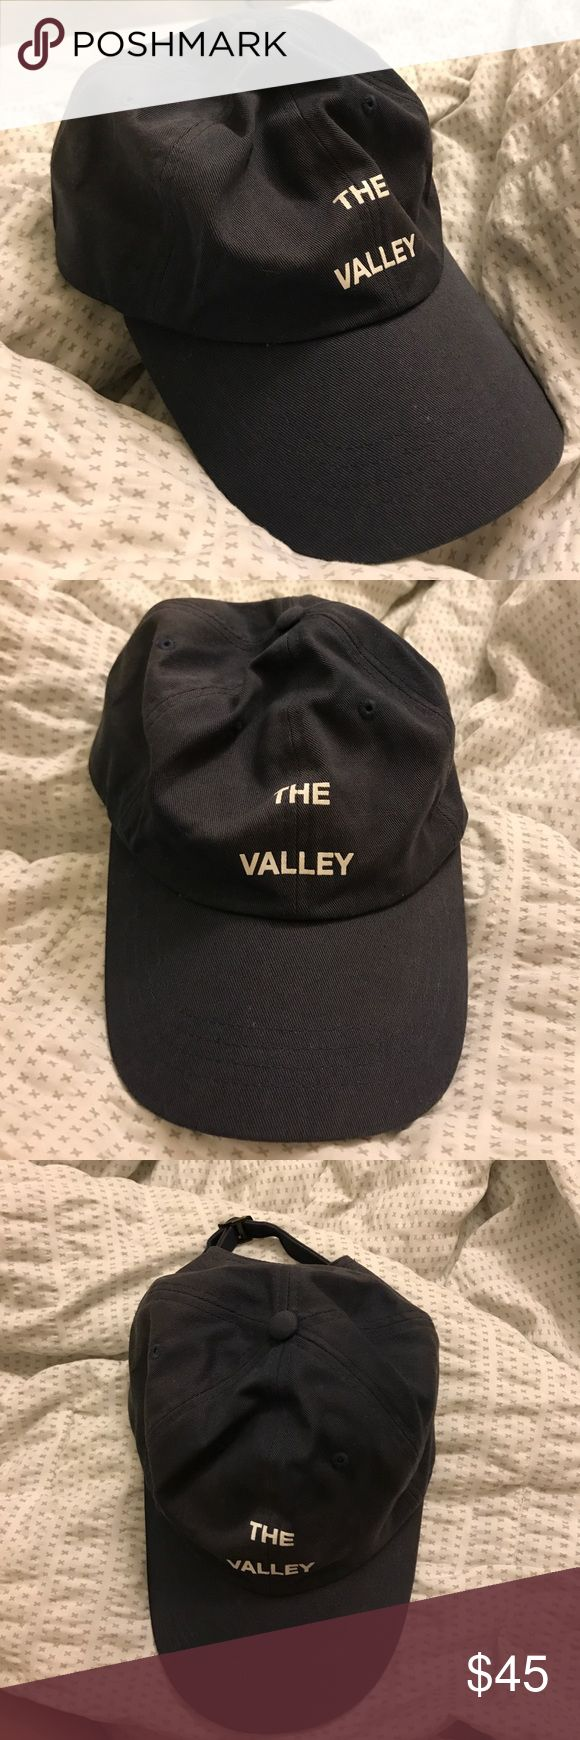 Antisocial Social Club The Valley Hat ASSC the valley hat in navy blue Anti Social Social Club Accessories Hats